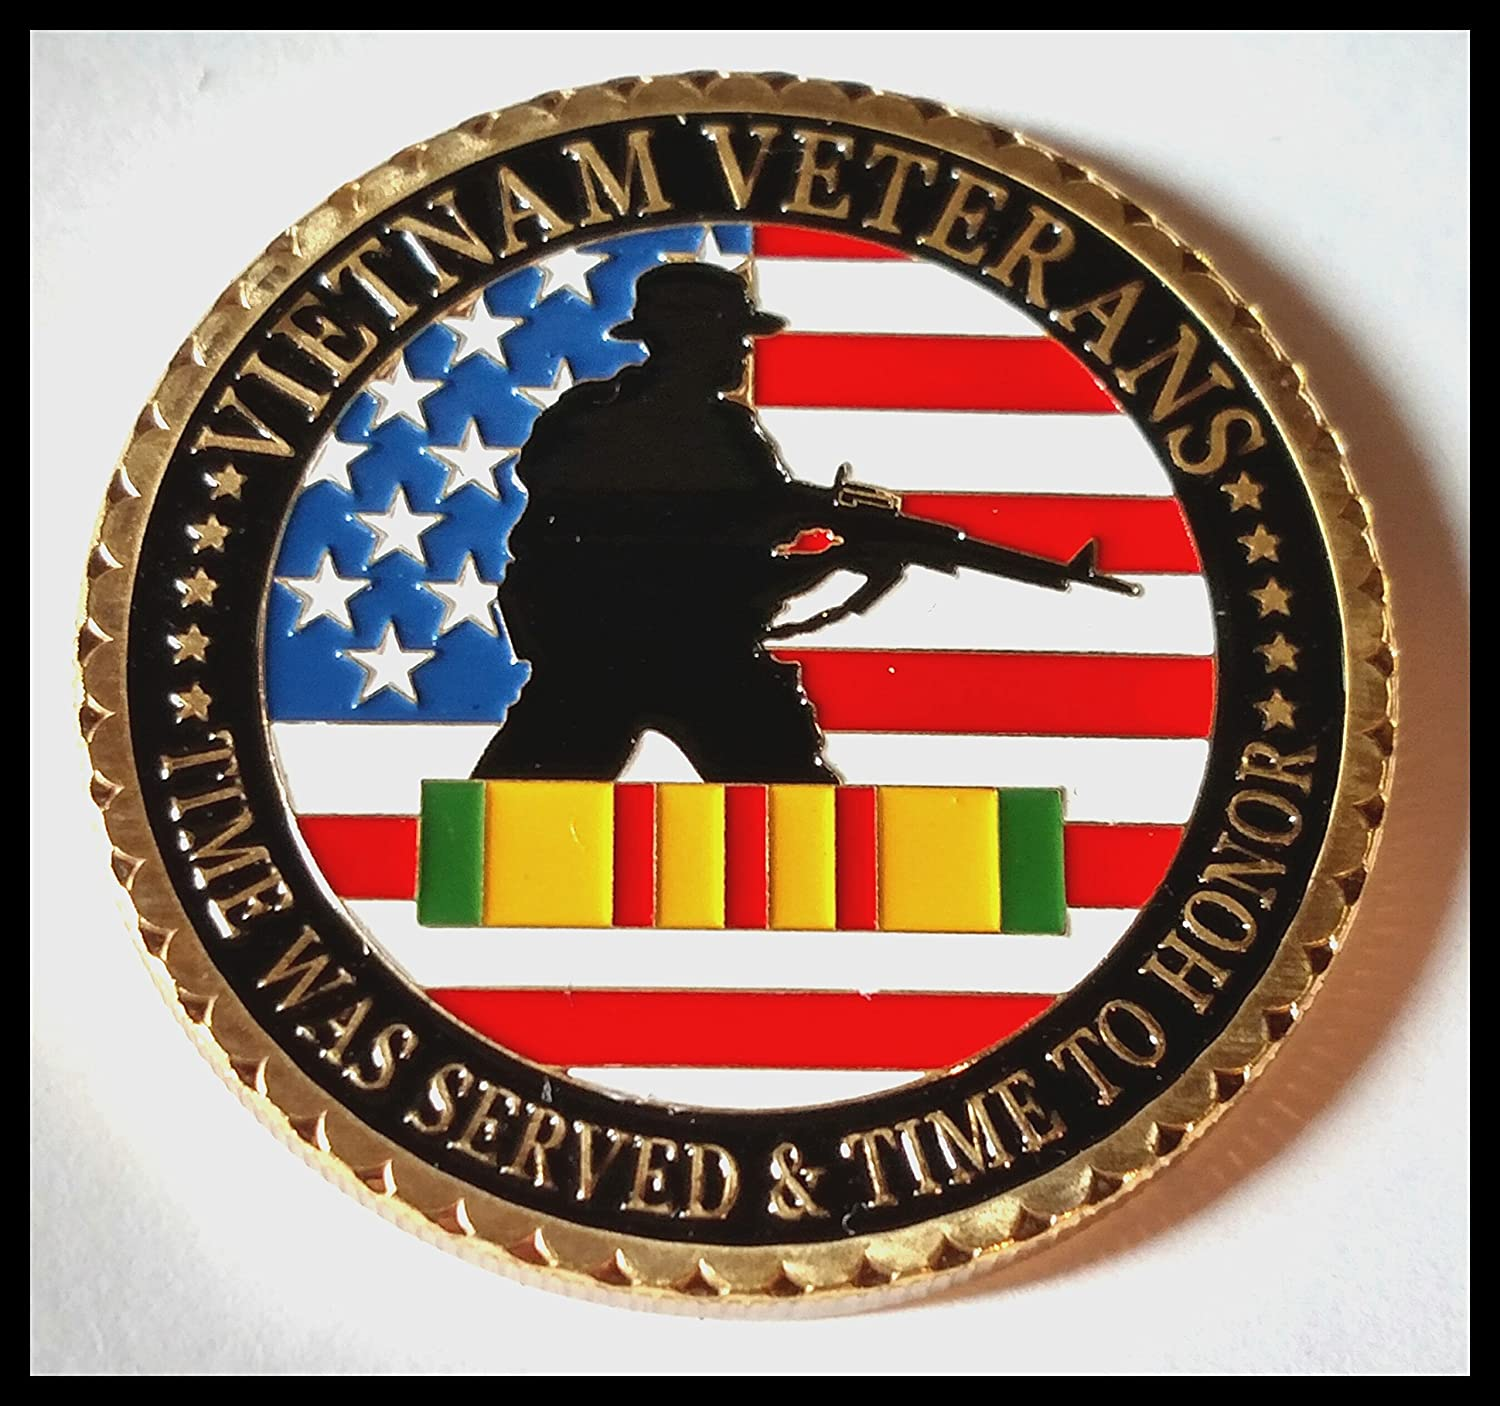 Military Vietnam Veterans 24K Gold Plated Challenge coin 1061# US